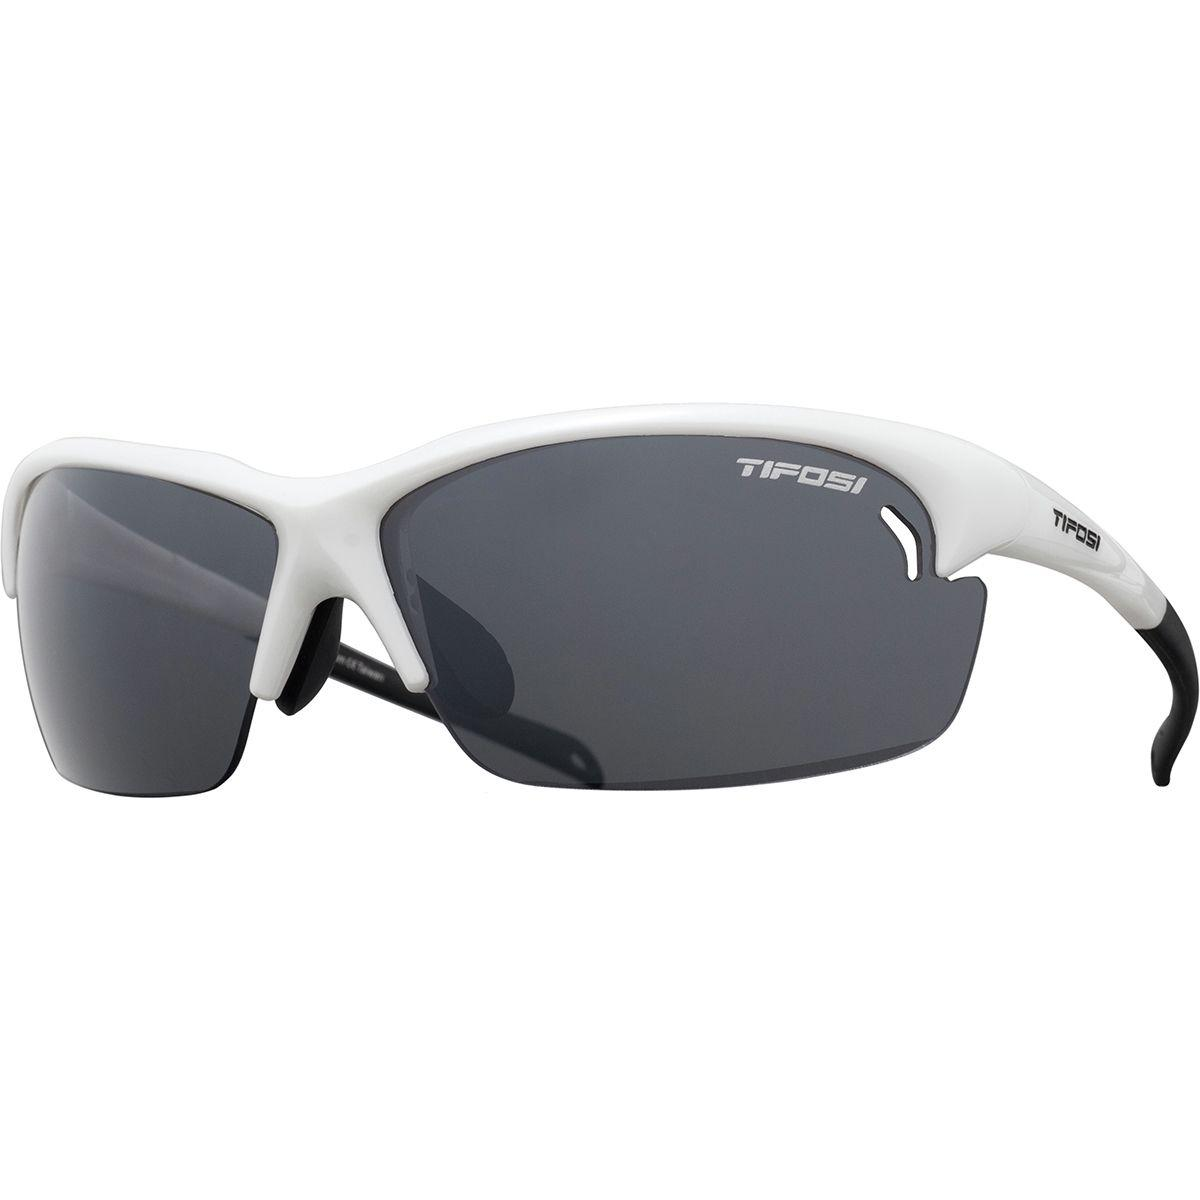 93400d43a8 Lyst - Tifosi Optics Stelvio Interchangeable Sunglasses in Gray for Men